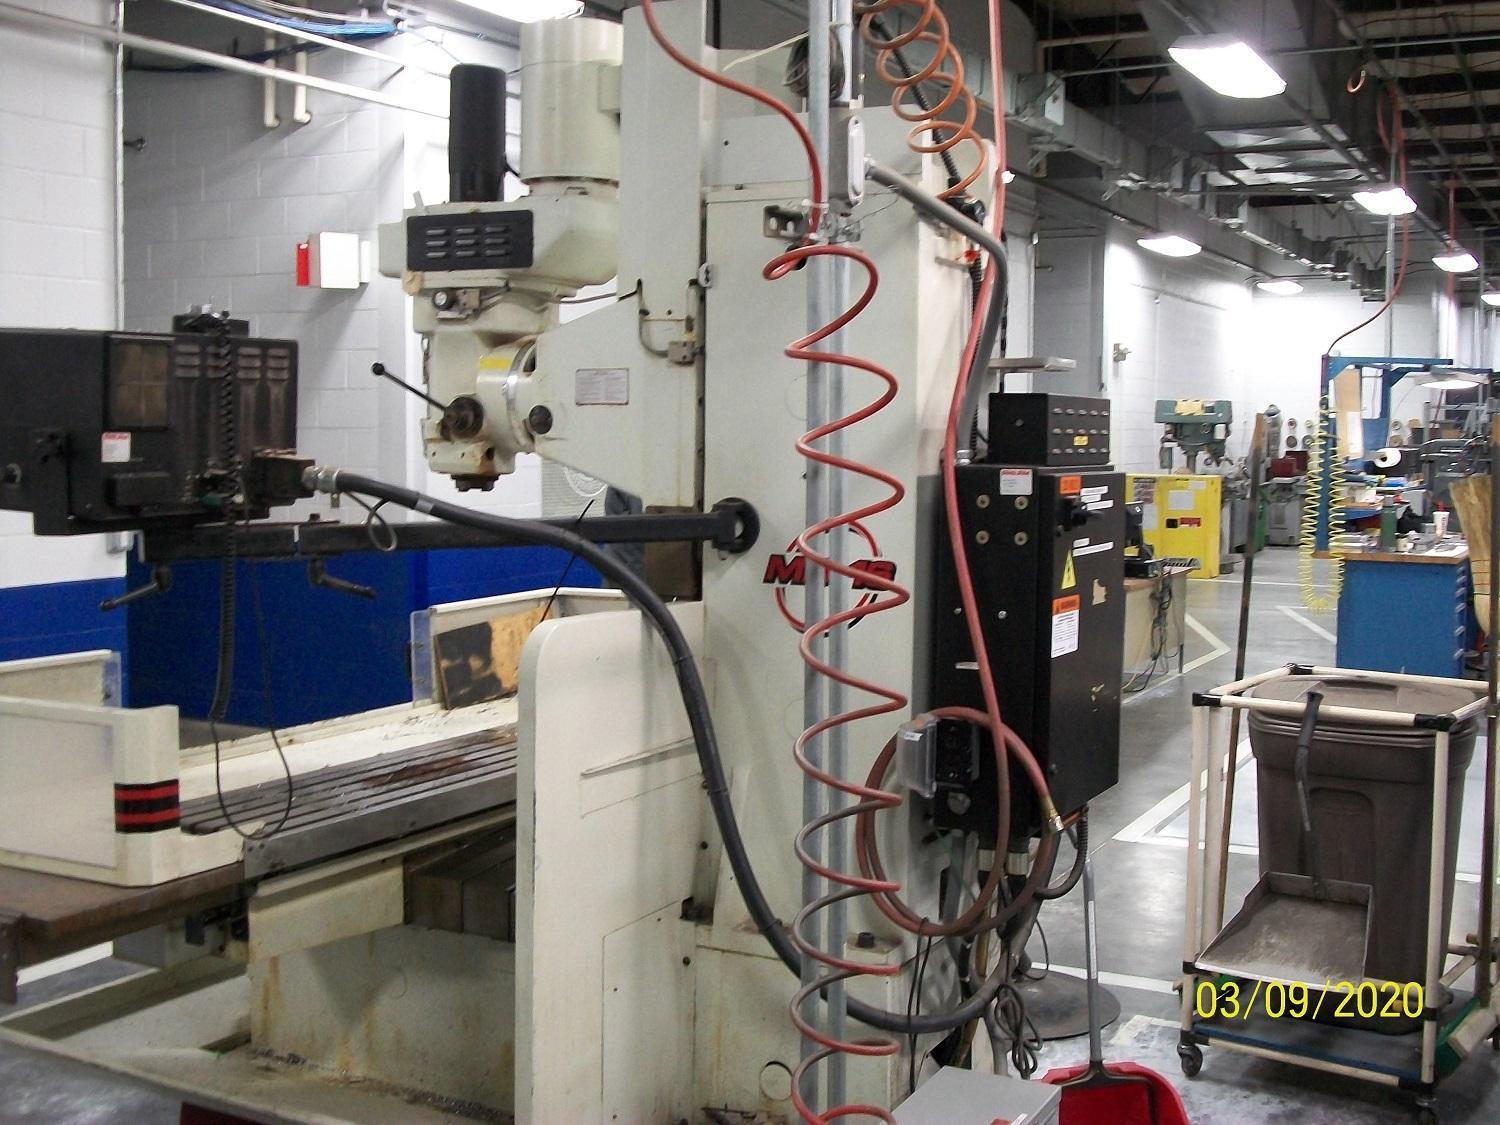 Fryer MB16 3-Axis CNC Knee Mill